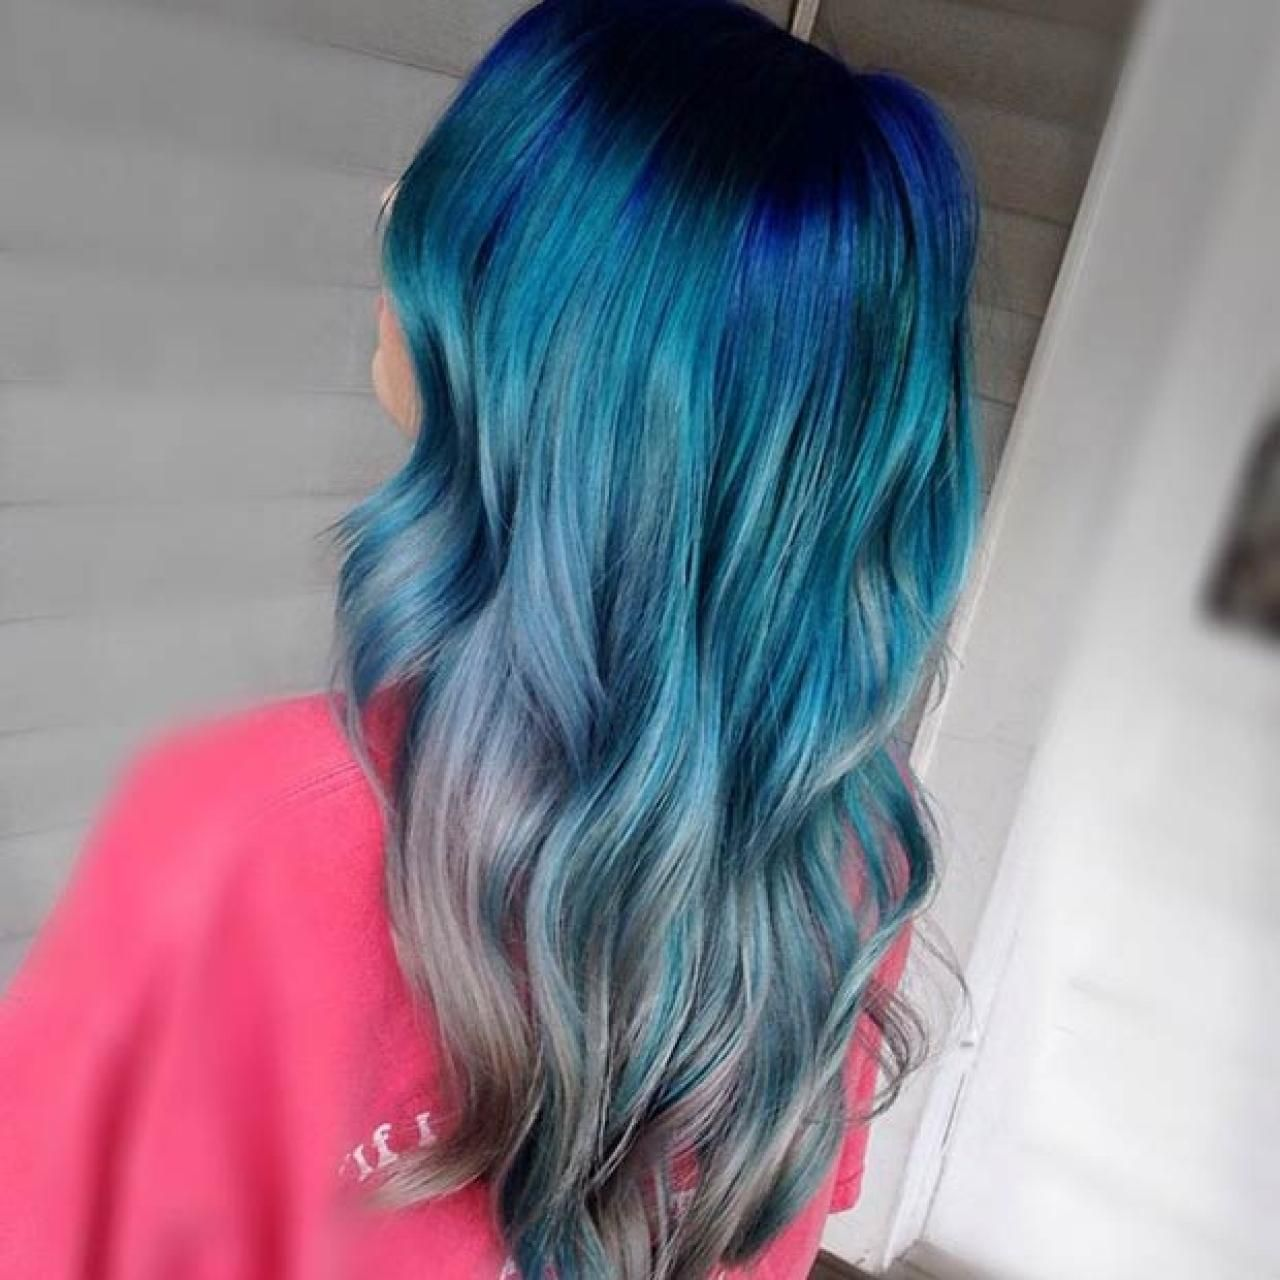 Blue ombre hair hair inspirations pinterest ombre hair ombre